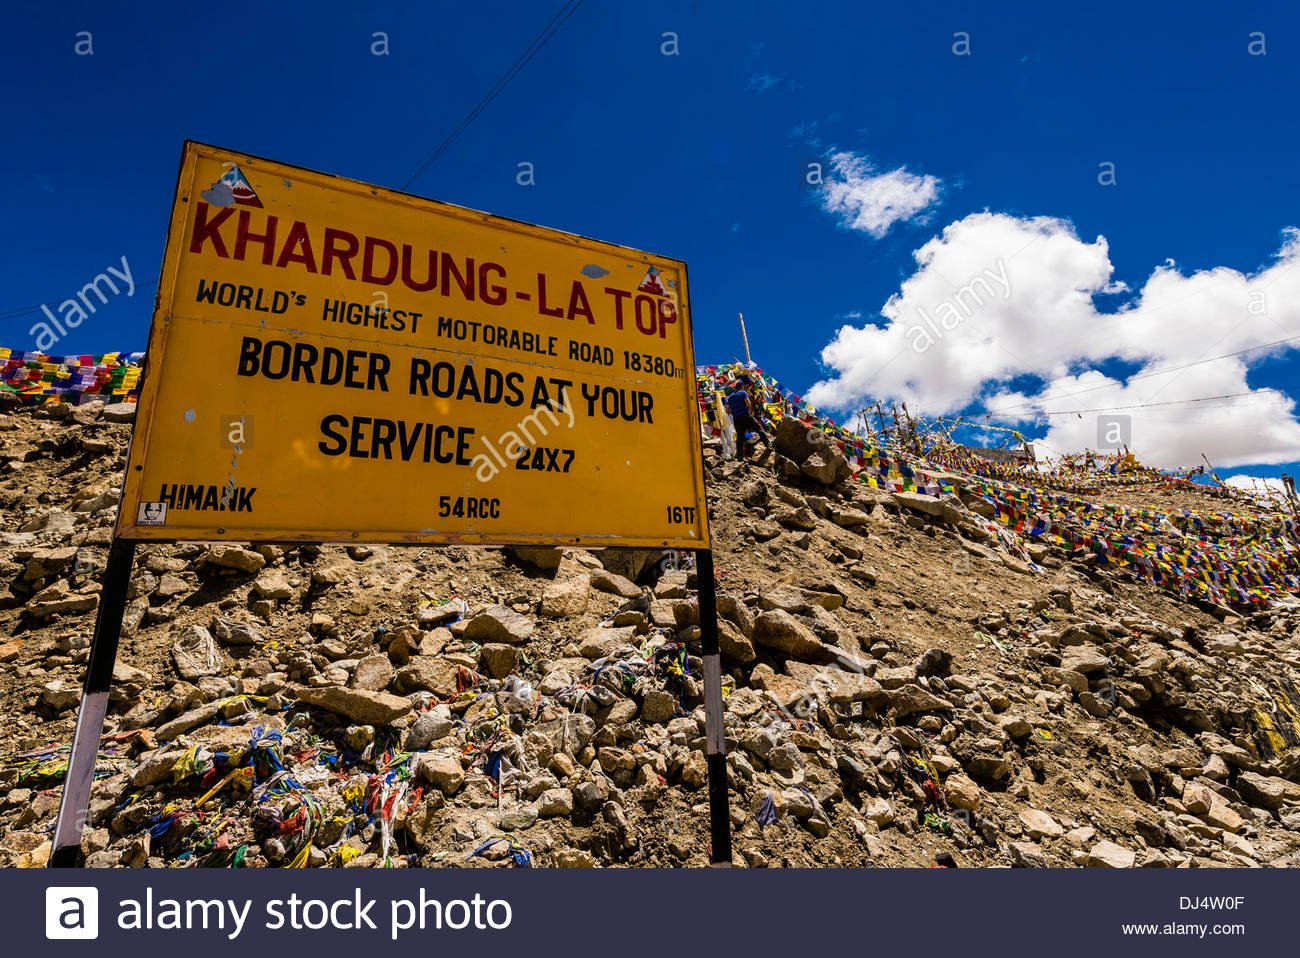 At 18,379 feet, the pass is the highest motorable road